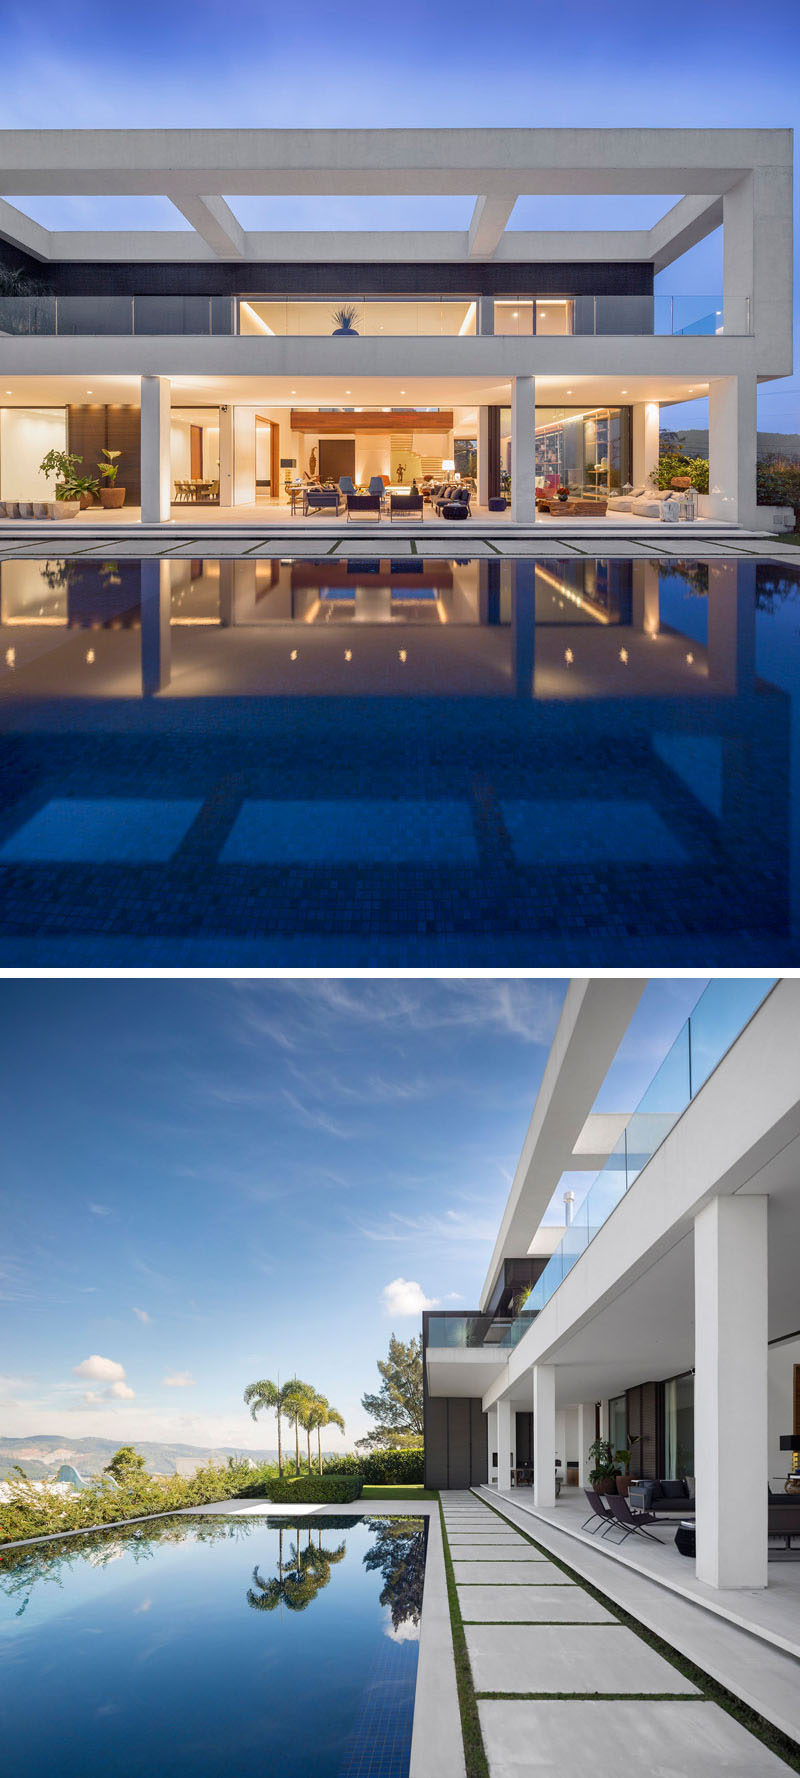 This large swimming pool and outdoor area, makes it easy to relax on a hot day, and entertain at night.